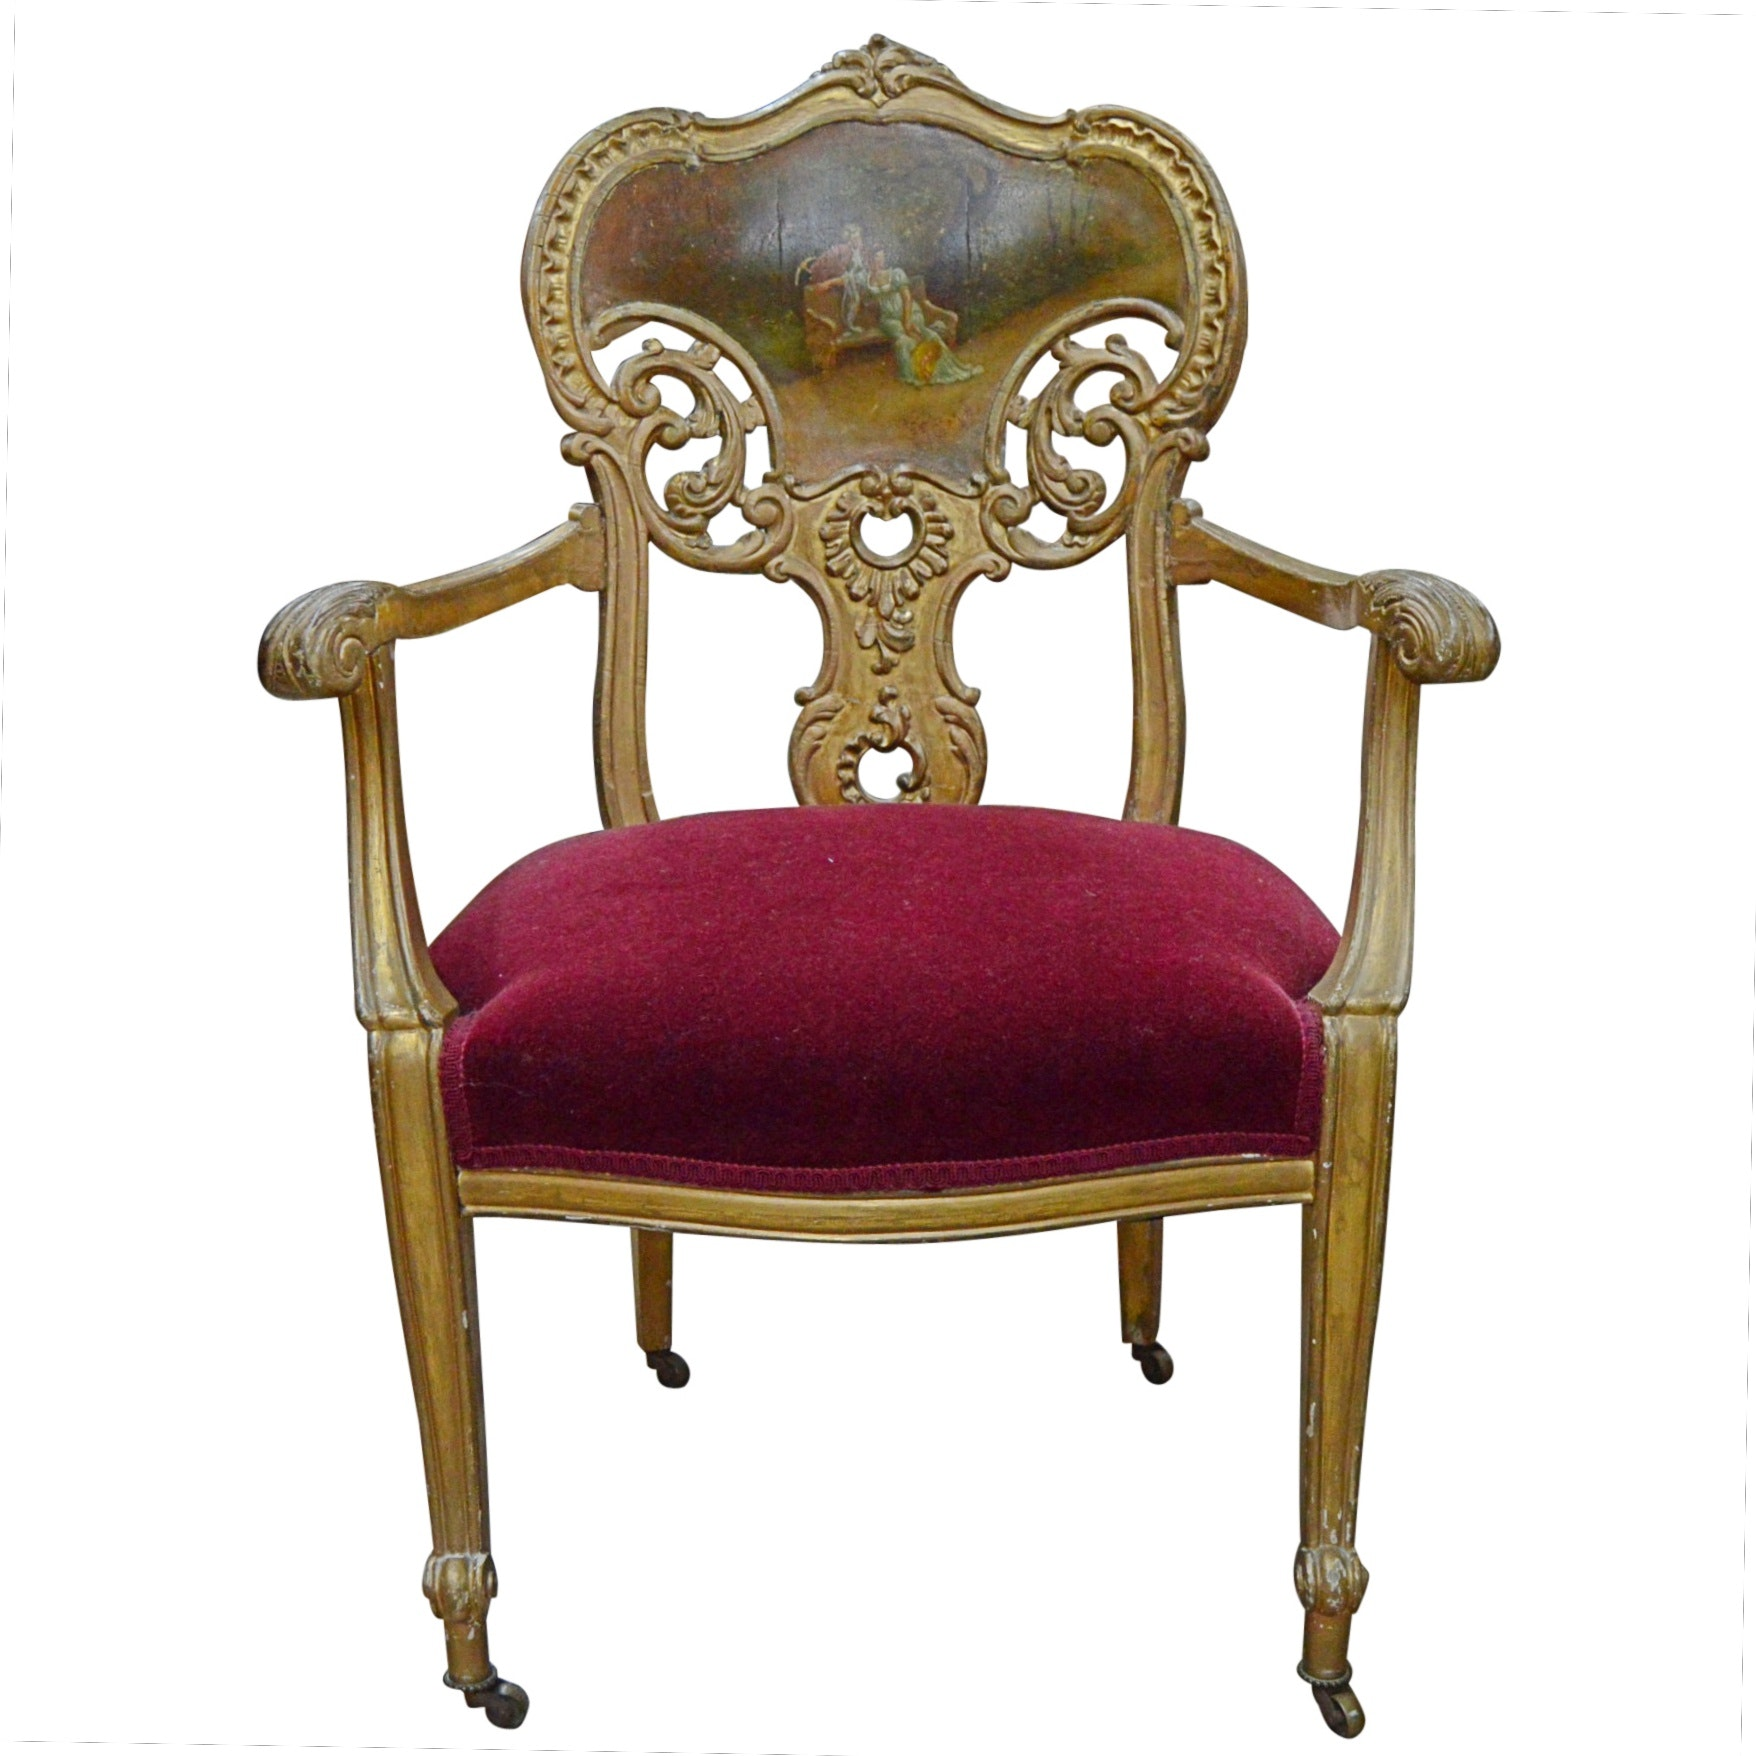 Vintage Louis XV Style Giltwood Chair